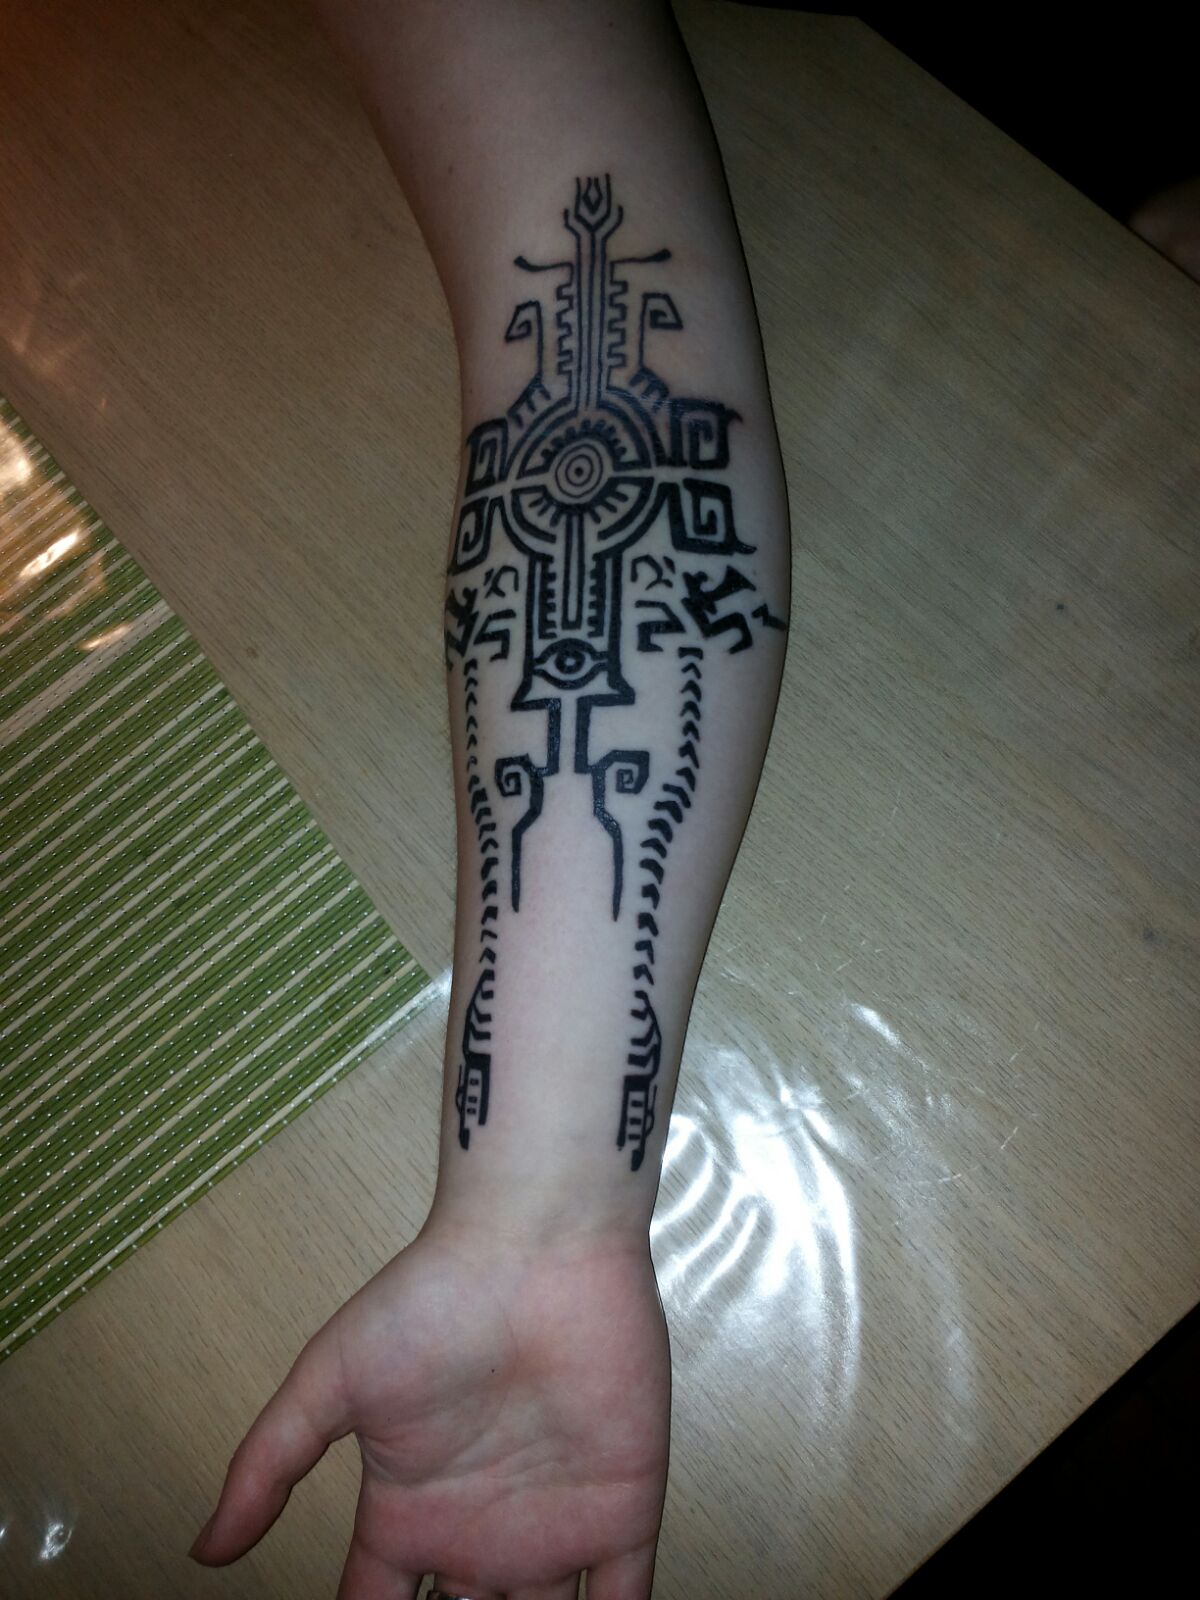 The Legend Of Zelda Twilight Princess Tattoo By Cryshads On Deviantart Legend of zelda tattoos that you can filter by style, body part and size, and order by date or score. the legend of zelda twilight princess